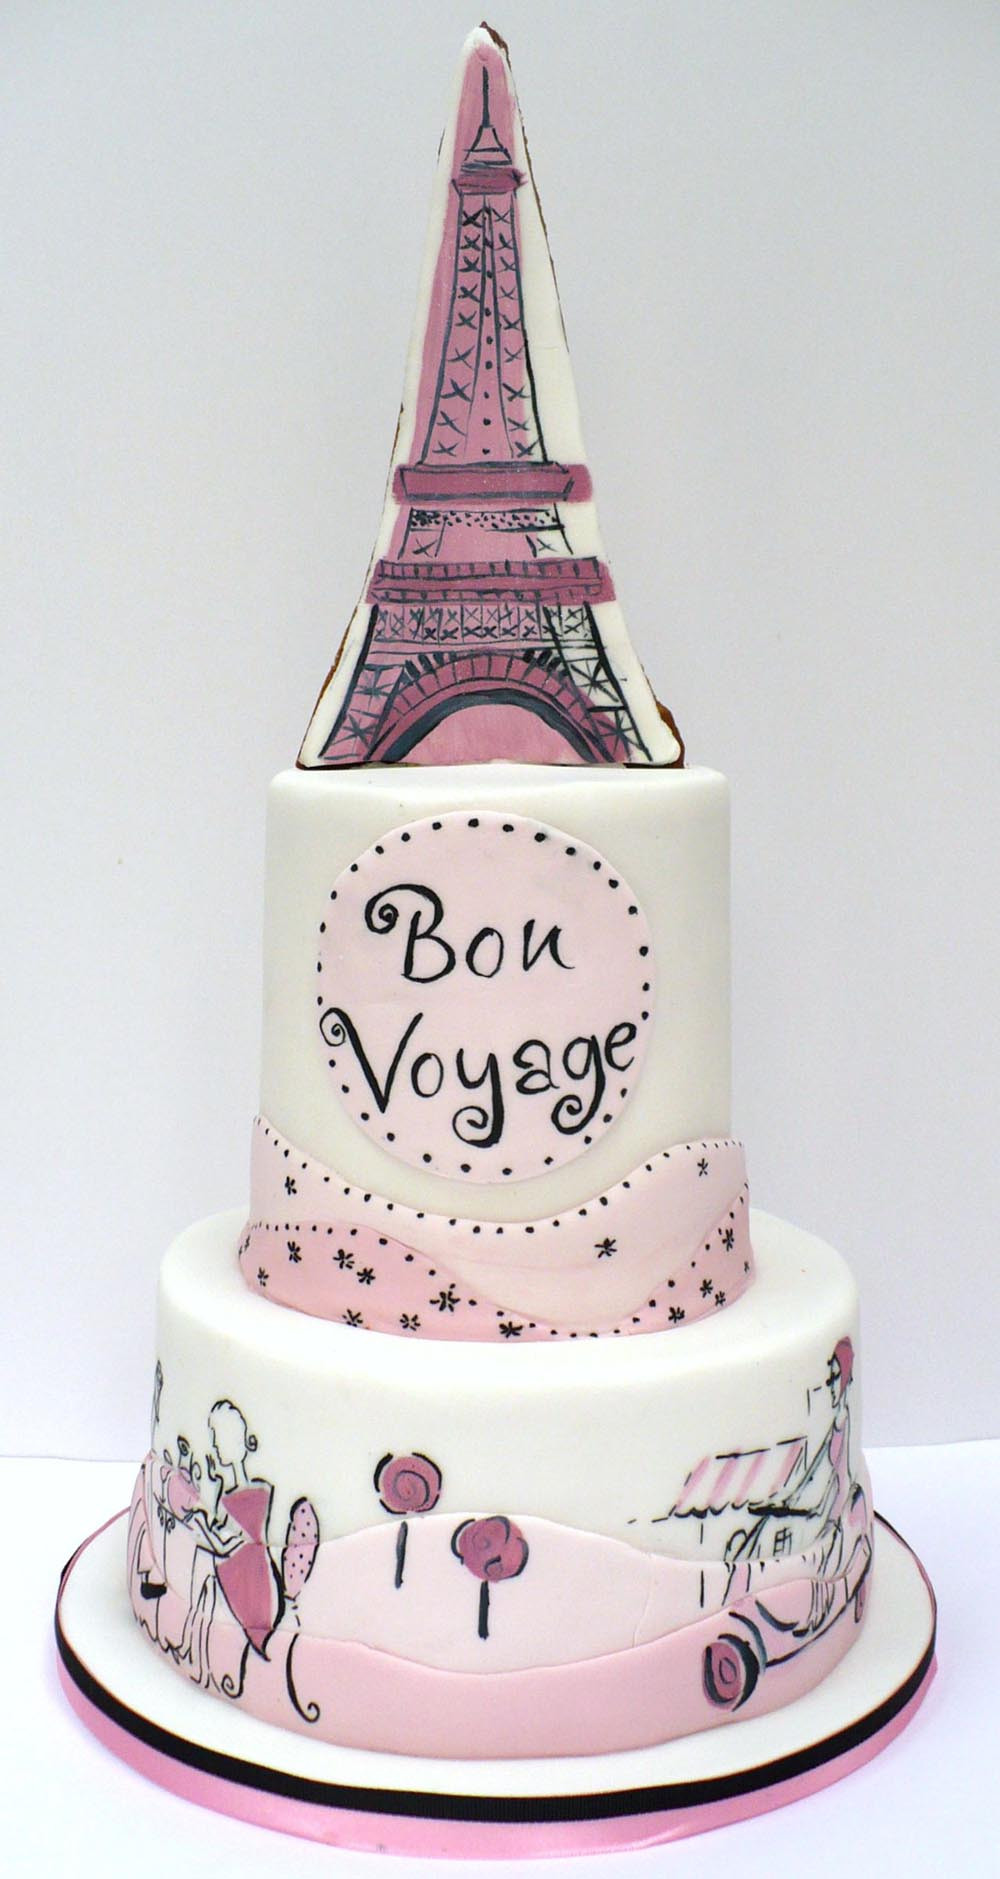 Best ideas about Paris Birthday Cake . Save or Pin Paris cake Now.